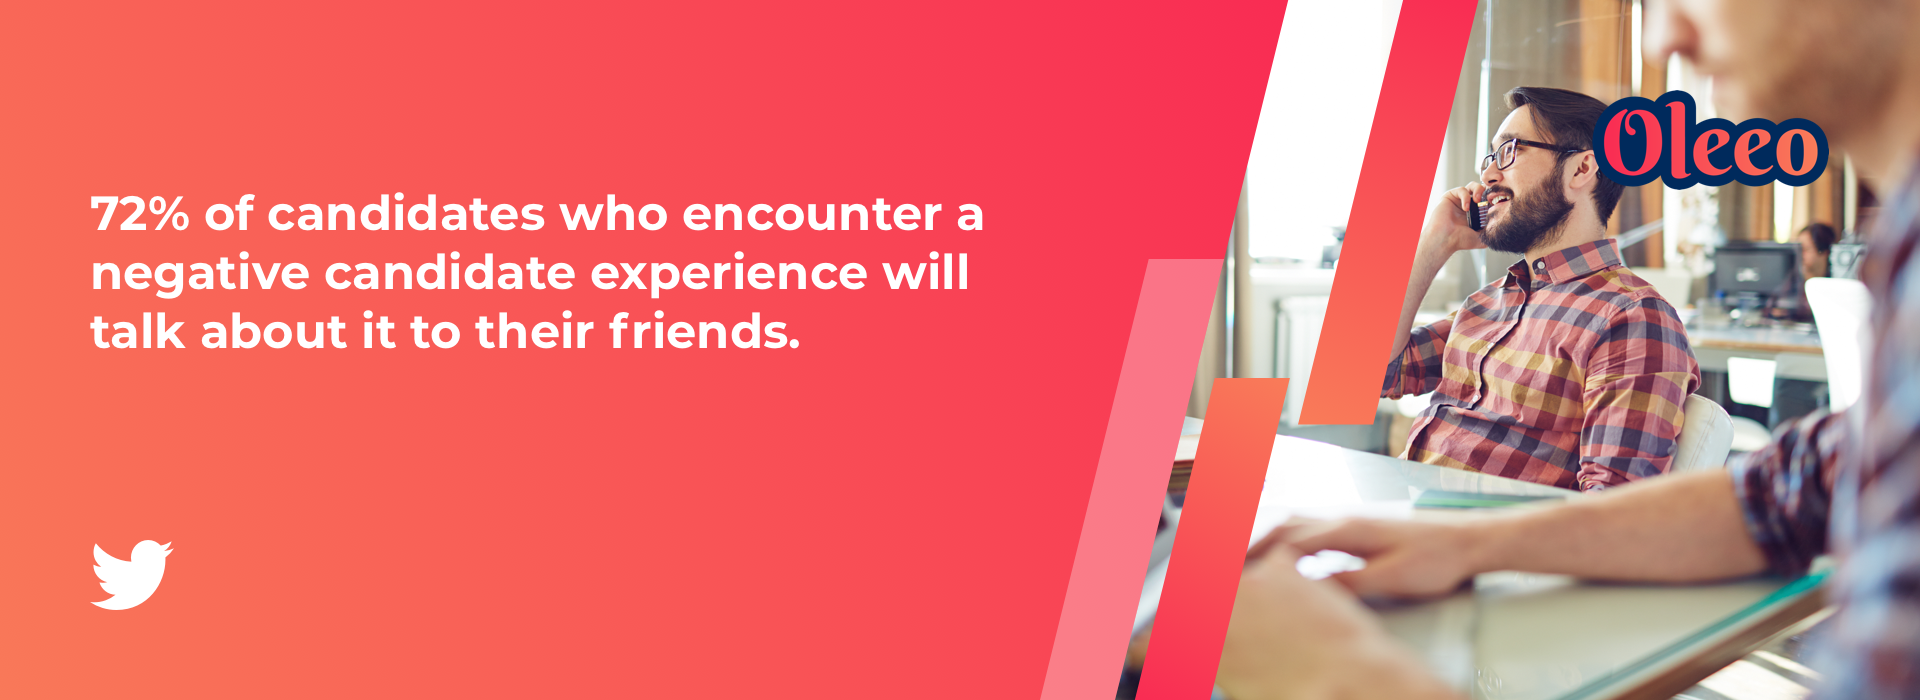 72% of candidates who encounter a negative candidate experience will talk about it to their friends.